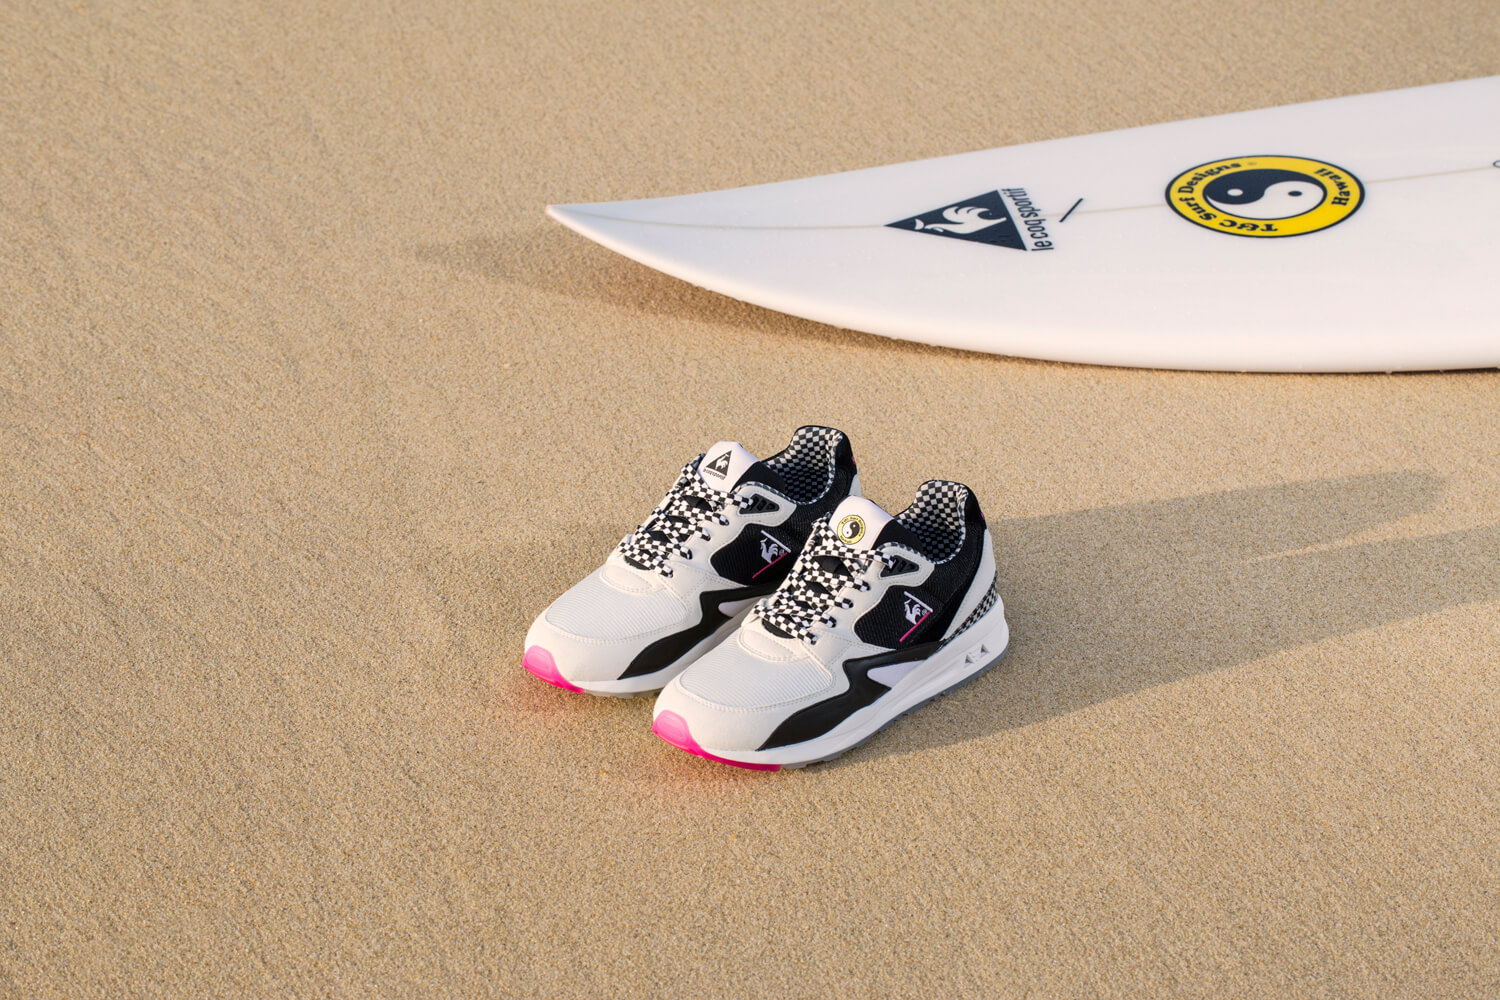 Le Coq Sportif x Town&Country Surf Designs LCSR800 and surfboard